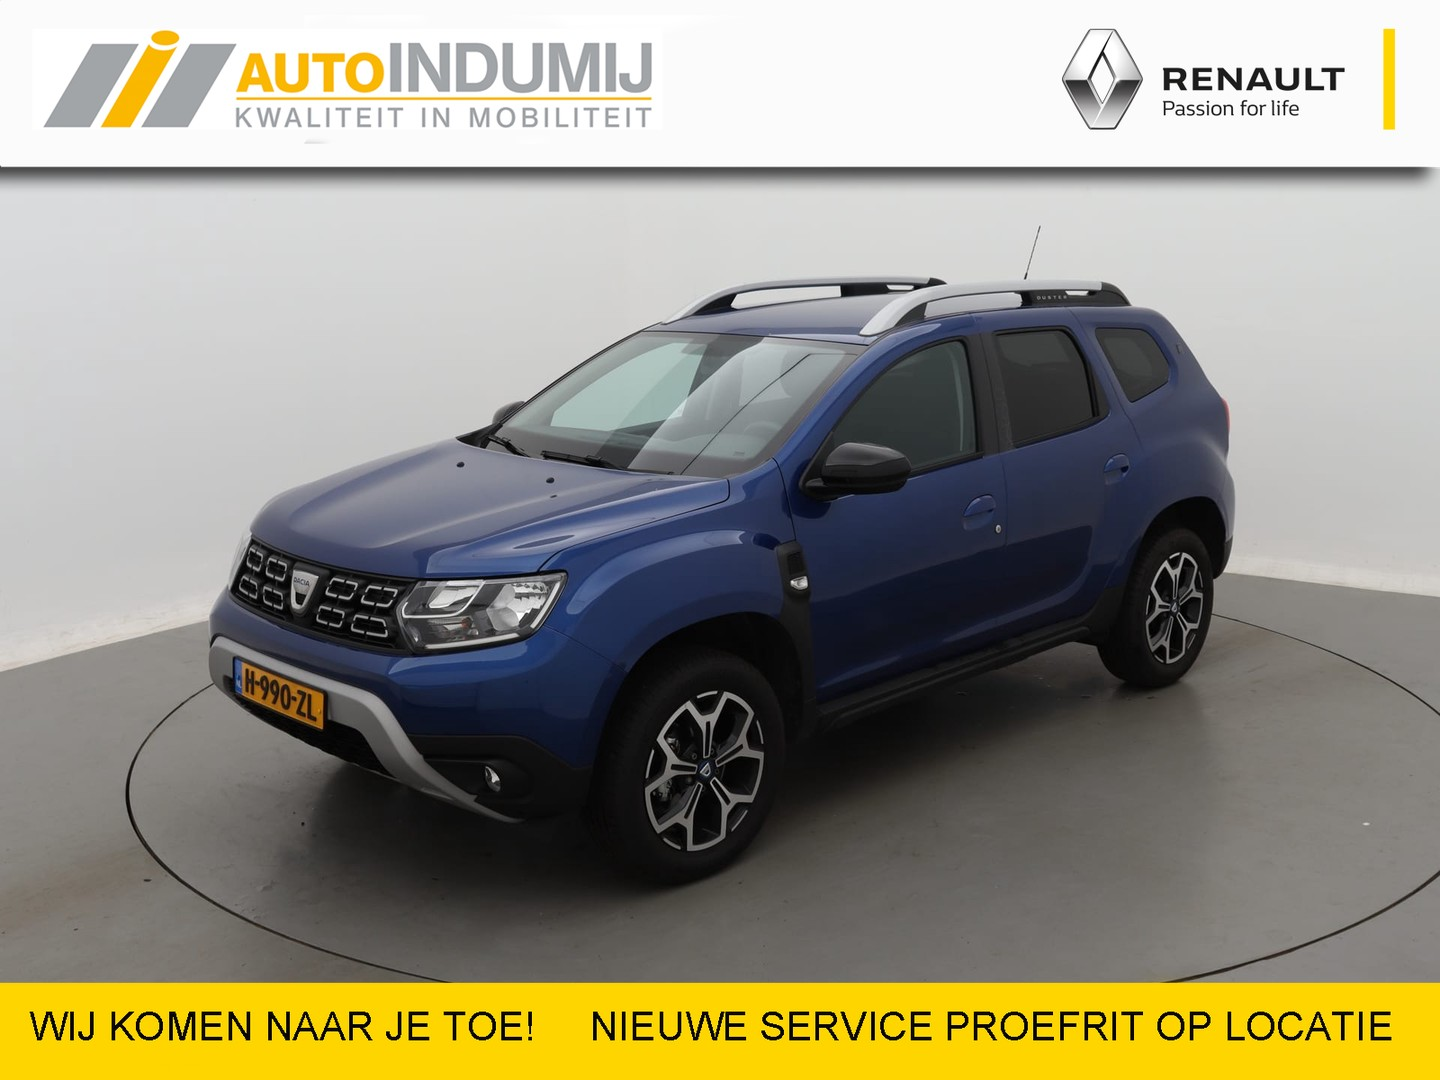 Dacia Duster Tce 130 serie limitee 15th anniversary / trekhaak / handsfree card /  demonstratie auto